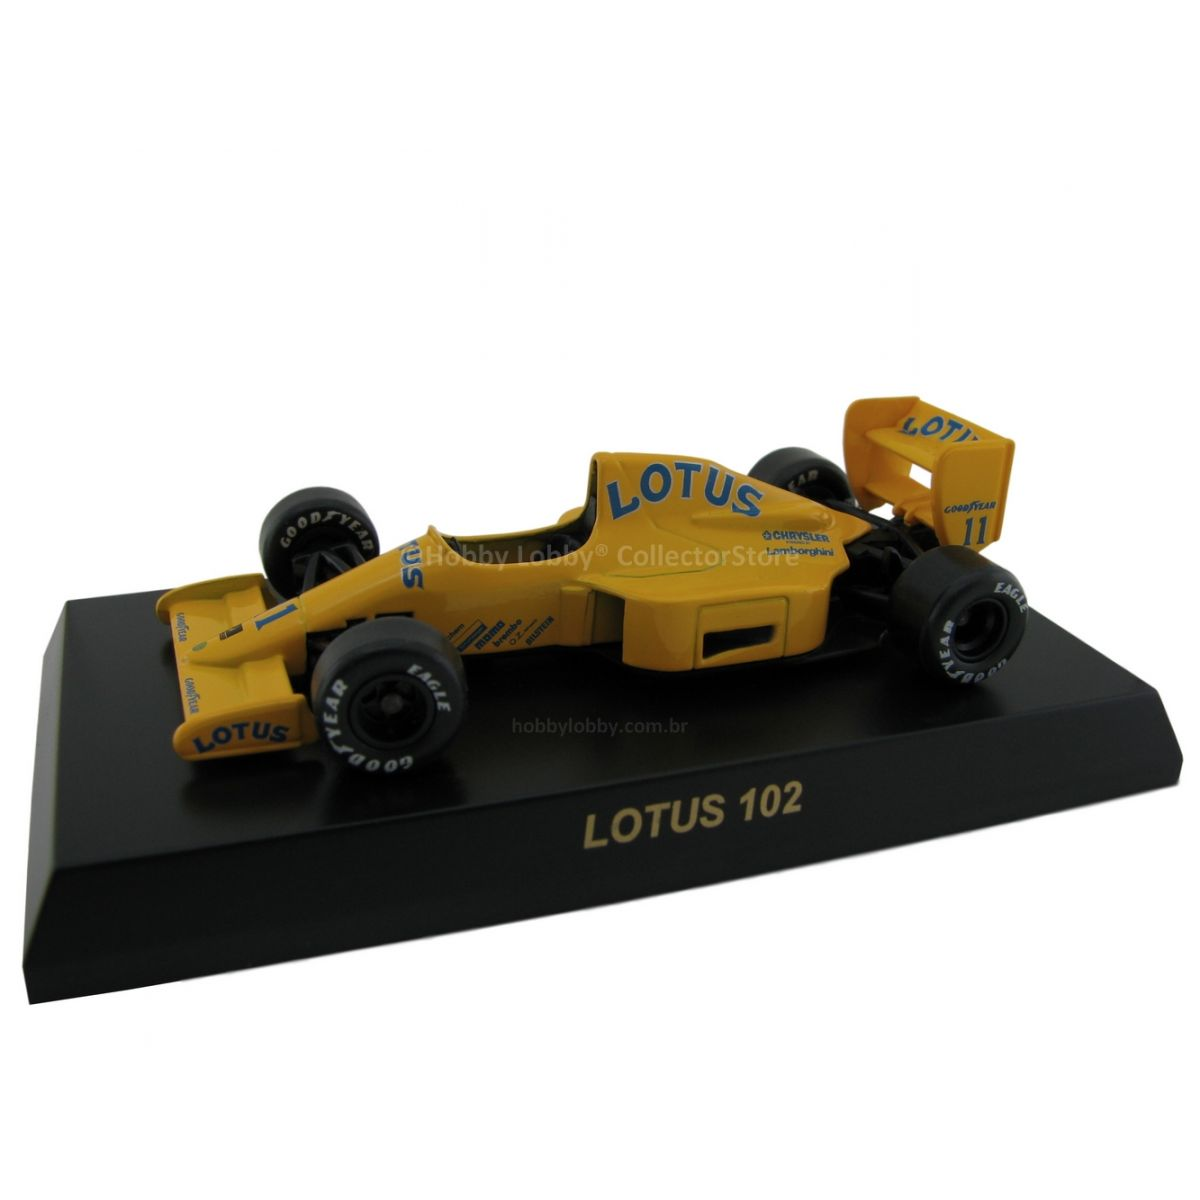 Kyosho - Classic Team Lotus - Lotus 102  - Hobby Lobby CollectorStore